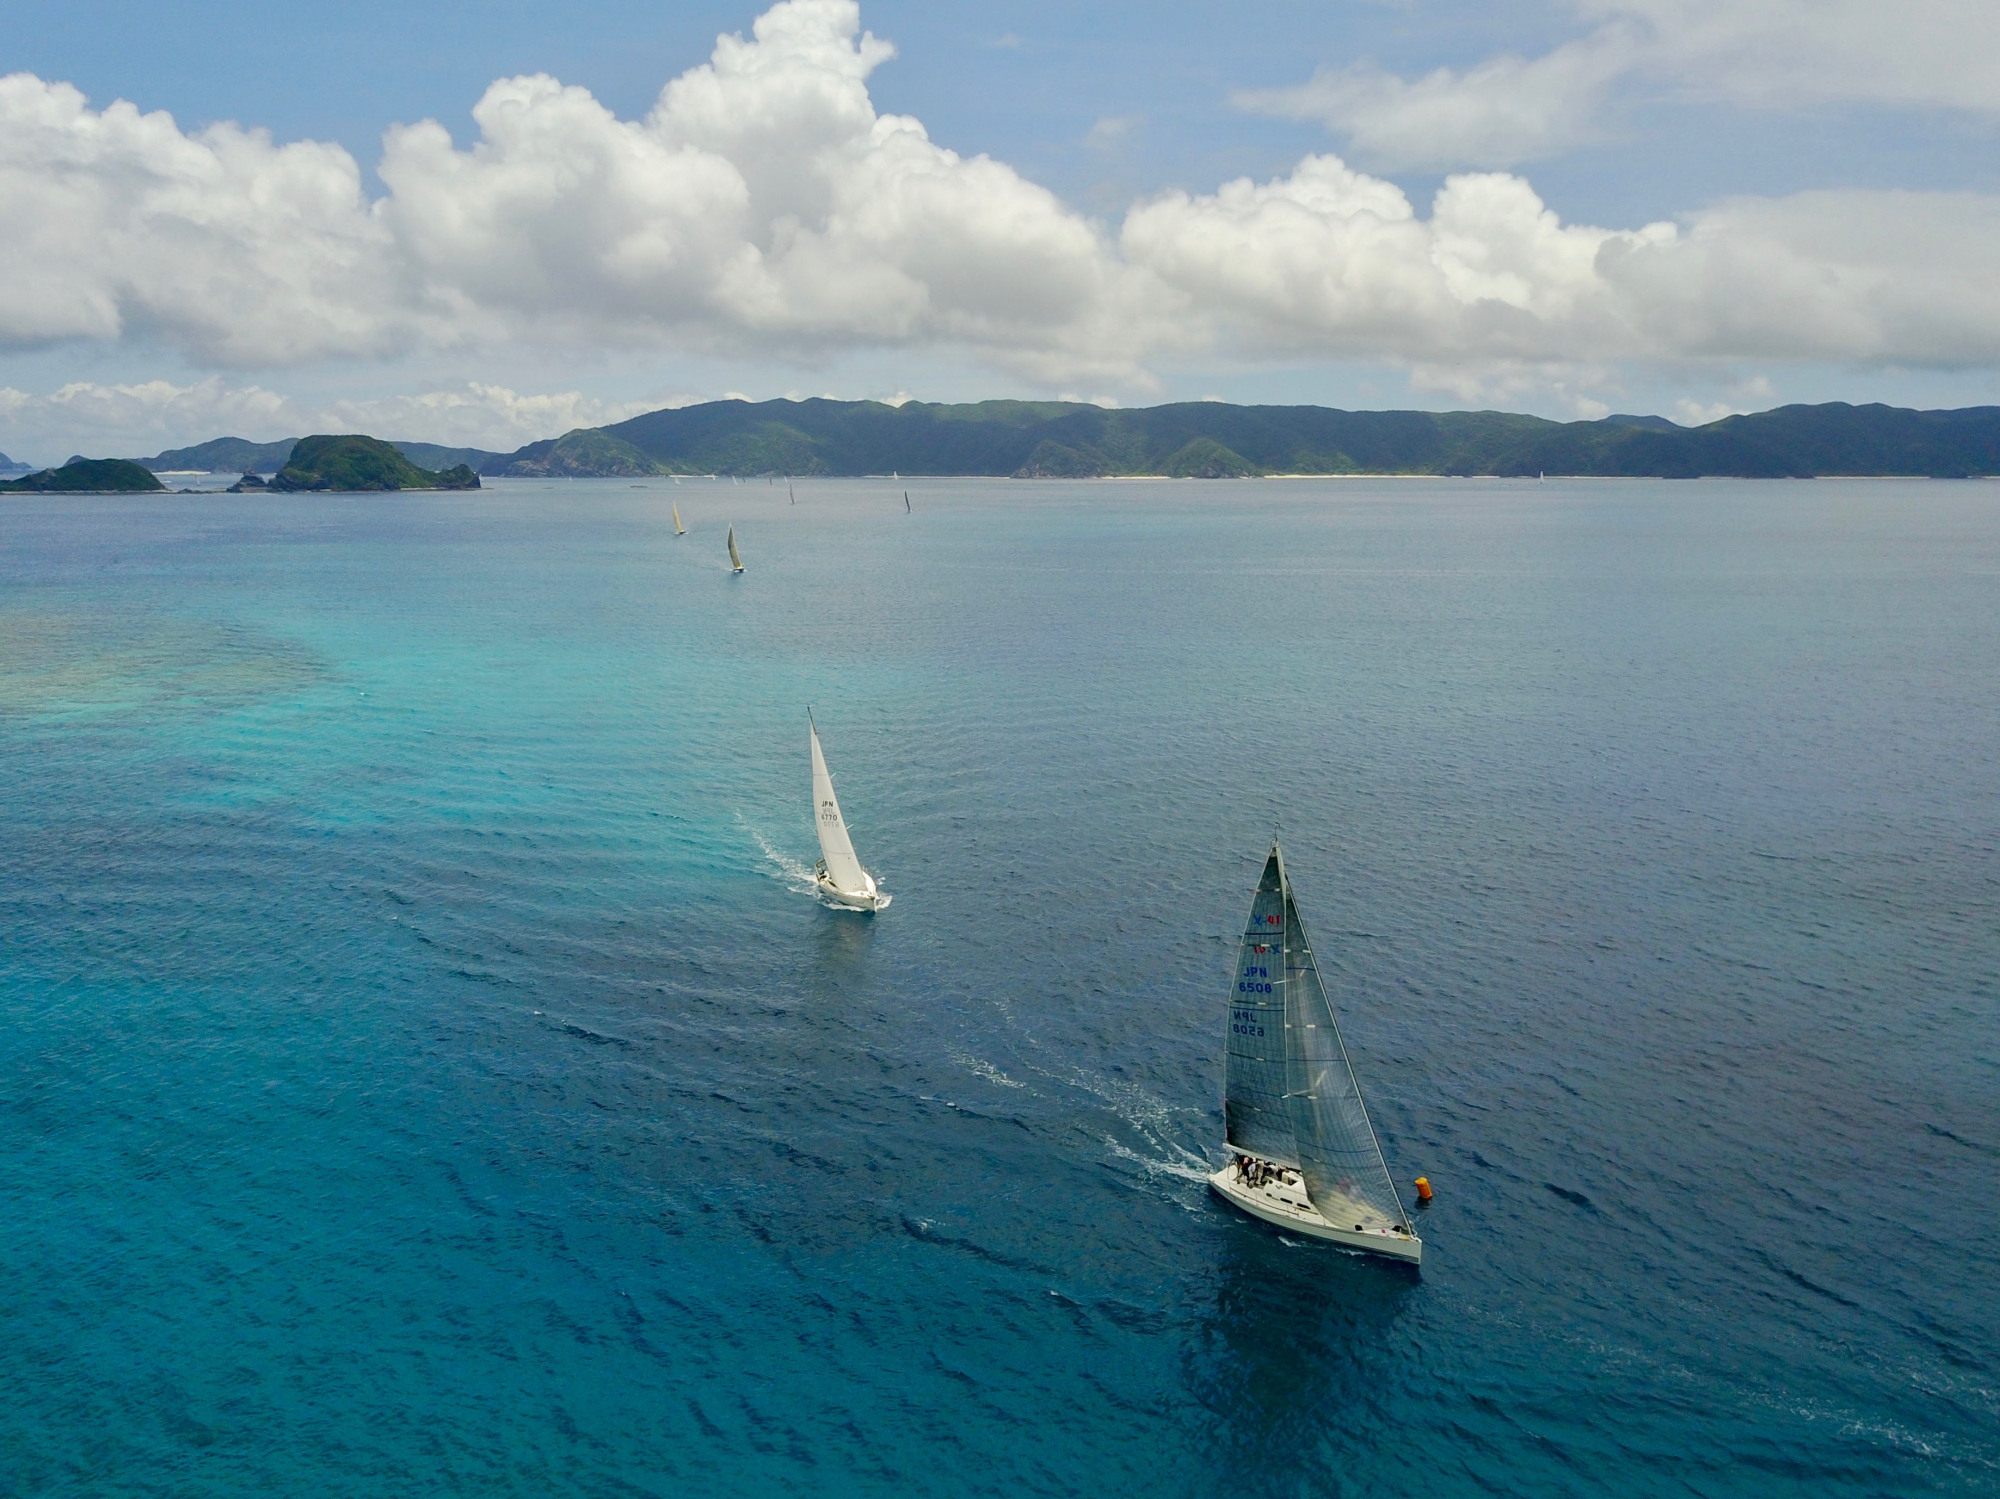 hight resolution of clean lines class i yachts round the buoy in furuzamami bay near the end of